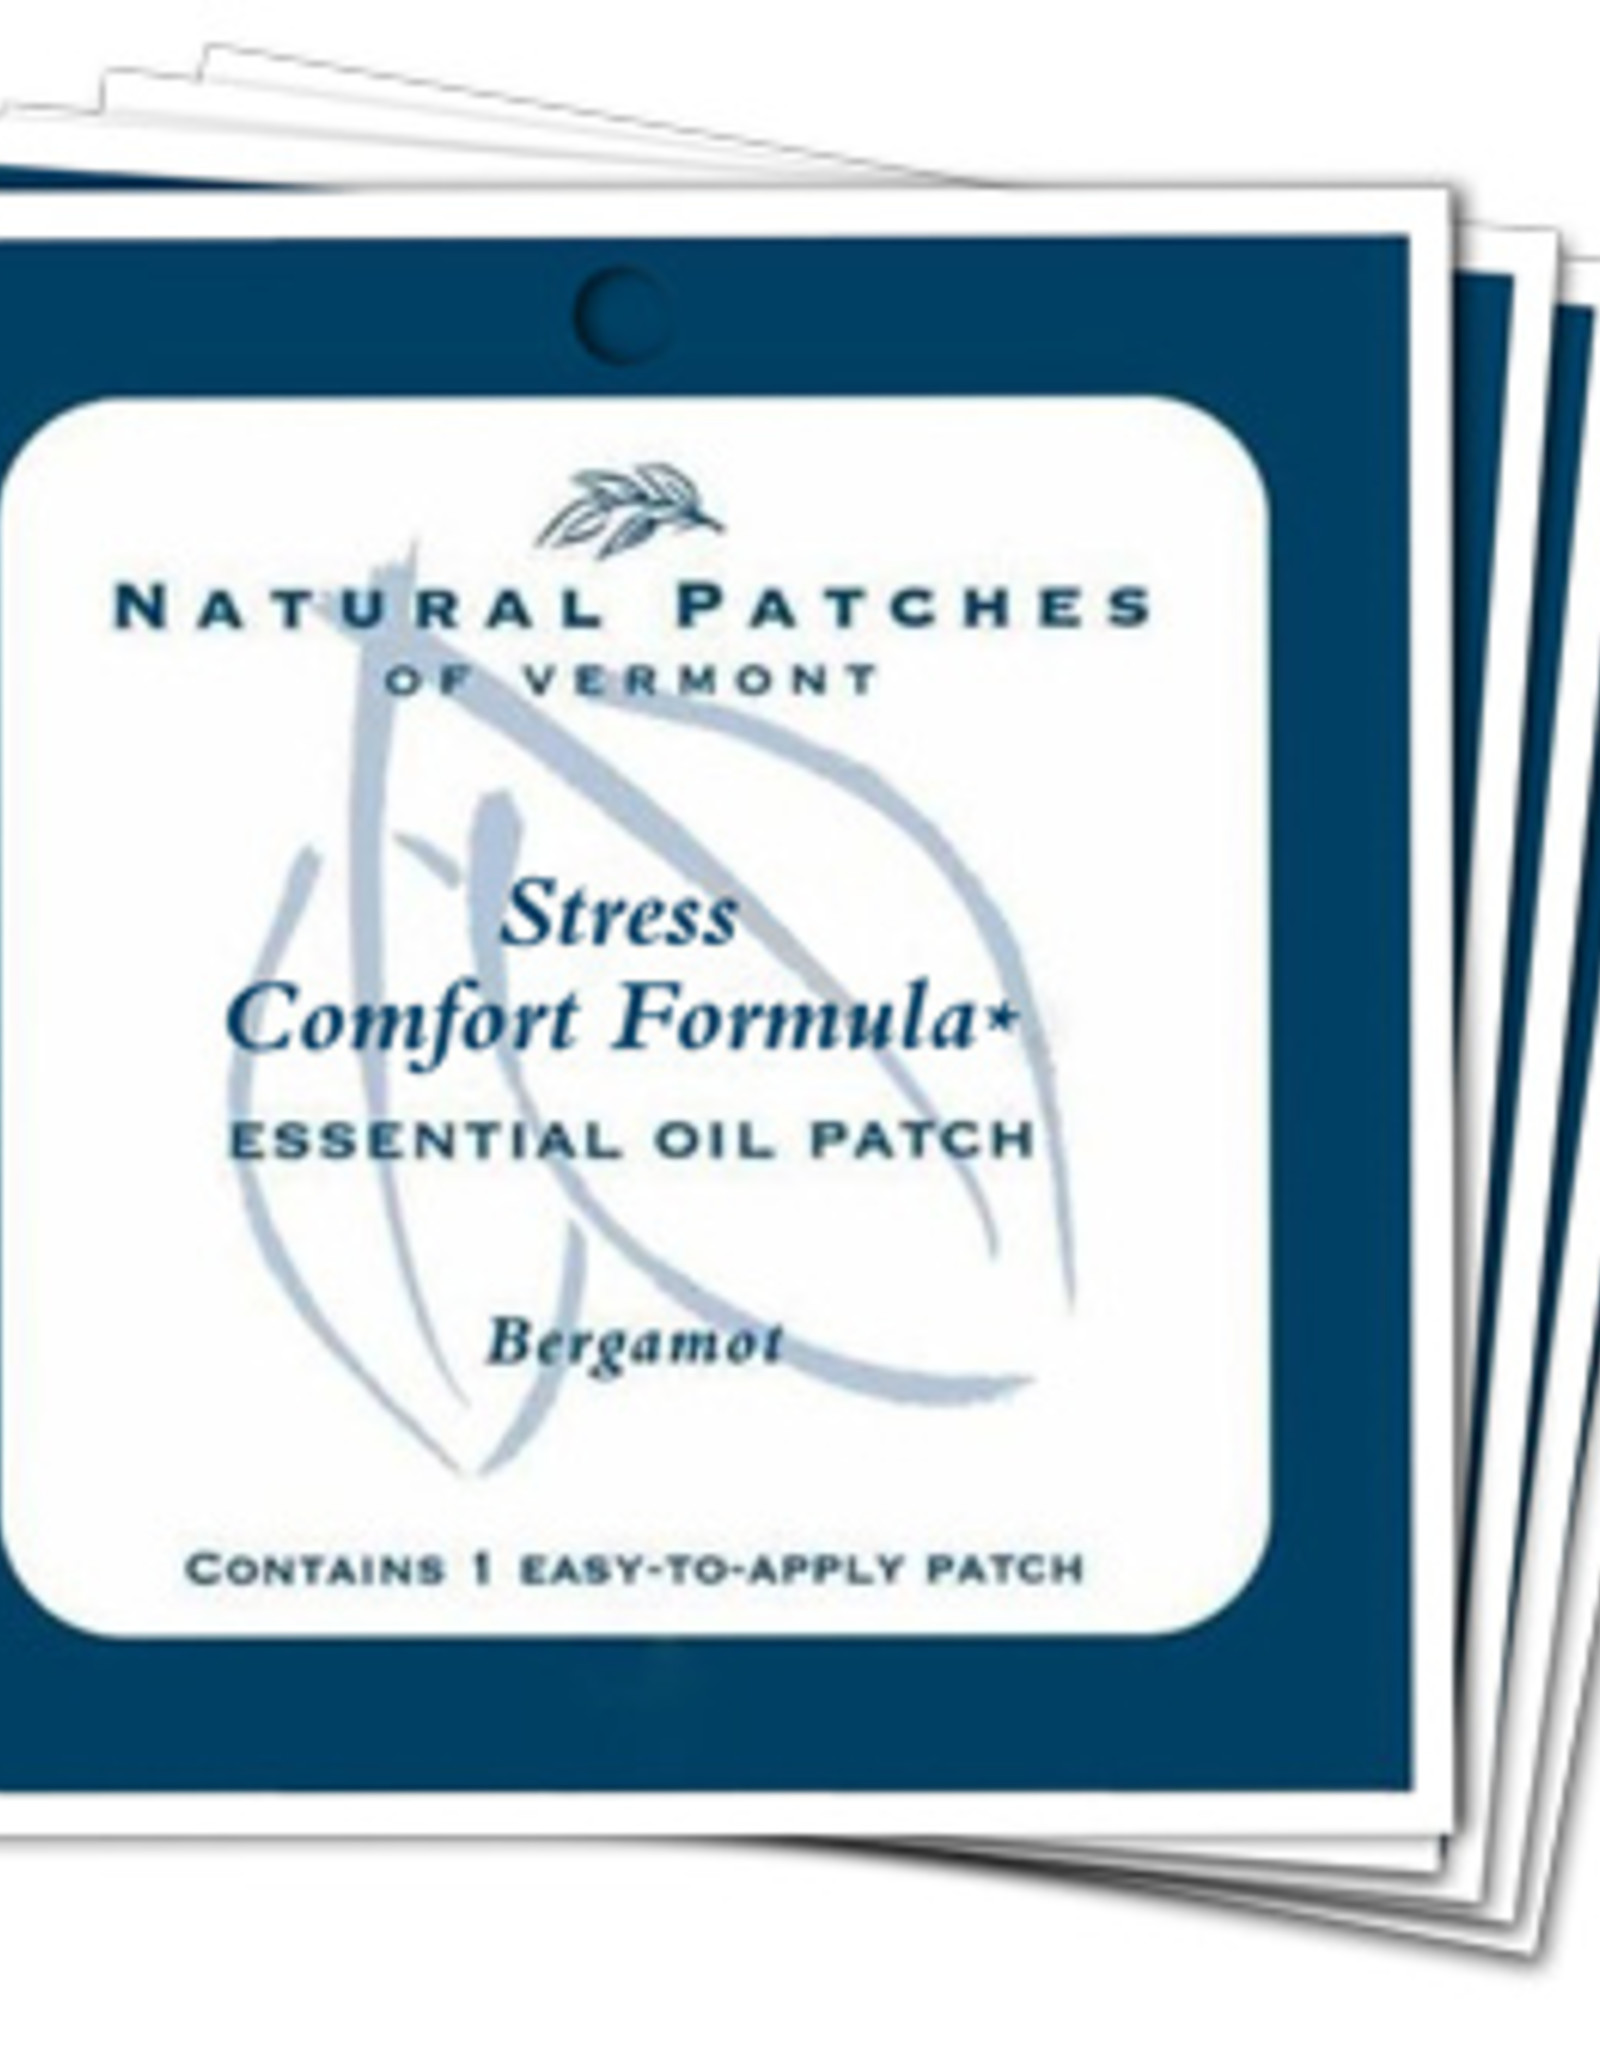 Natural Patches of Vermont Calming Stress Formula